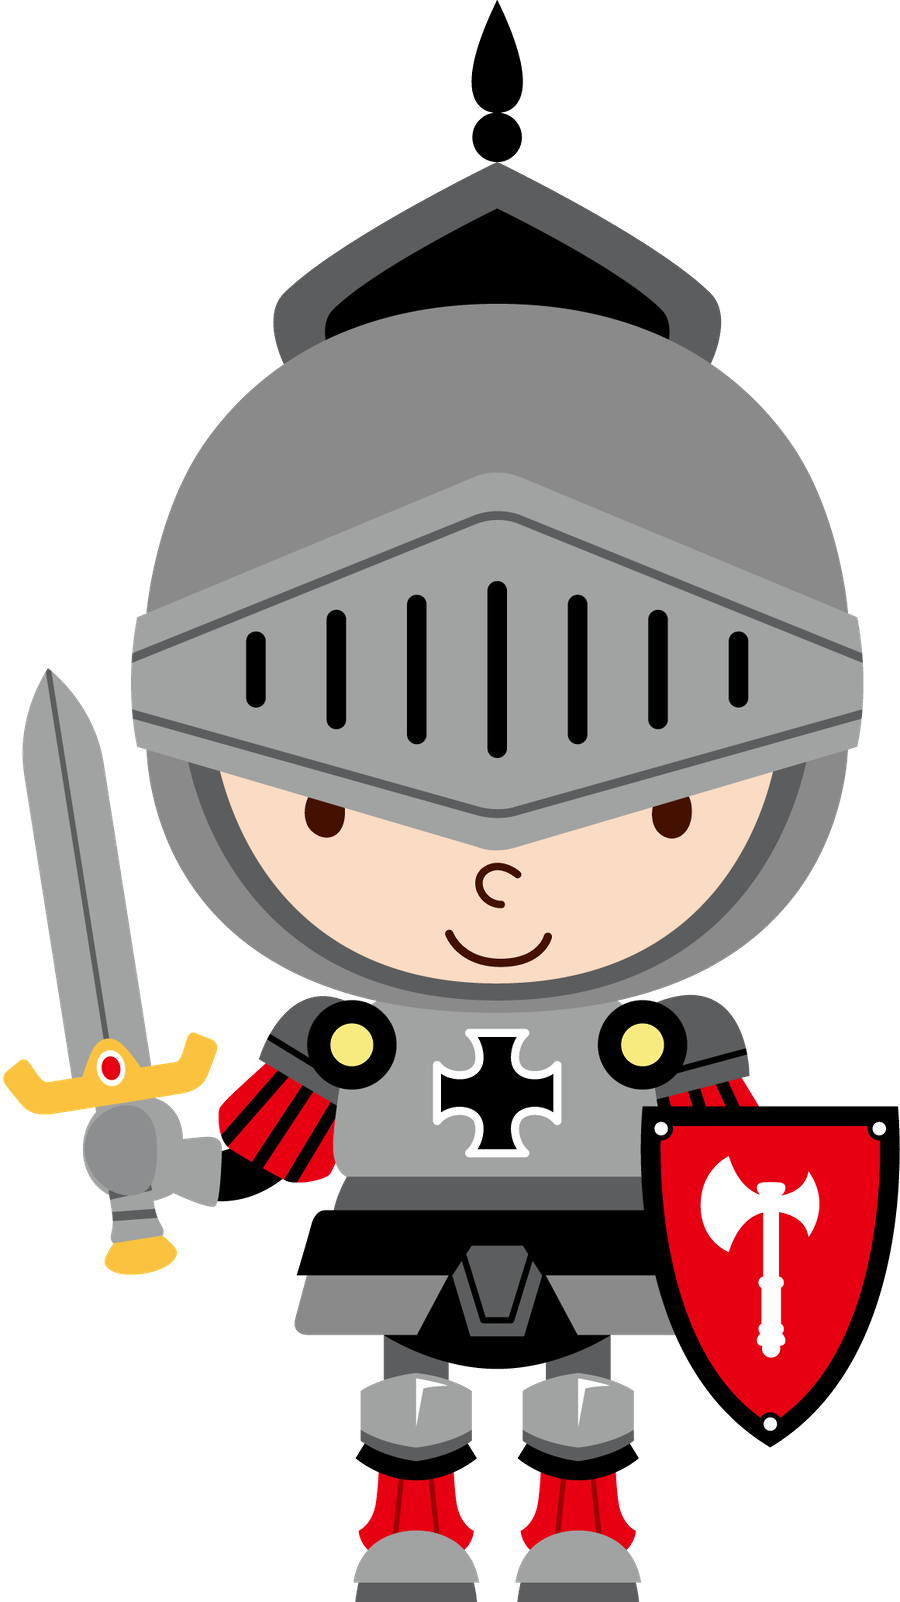 Knights clipart slayed dragon. Pin by alicia rosi